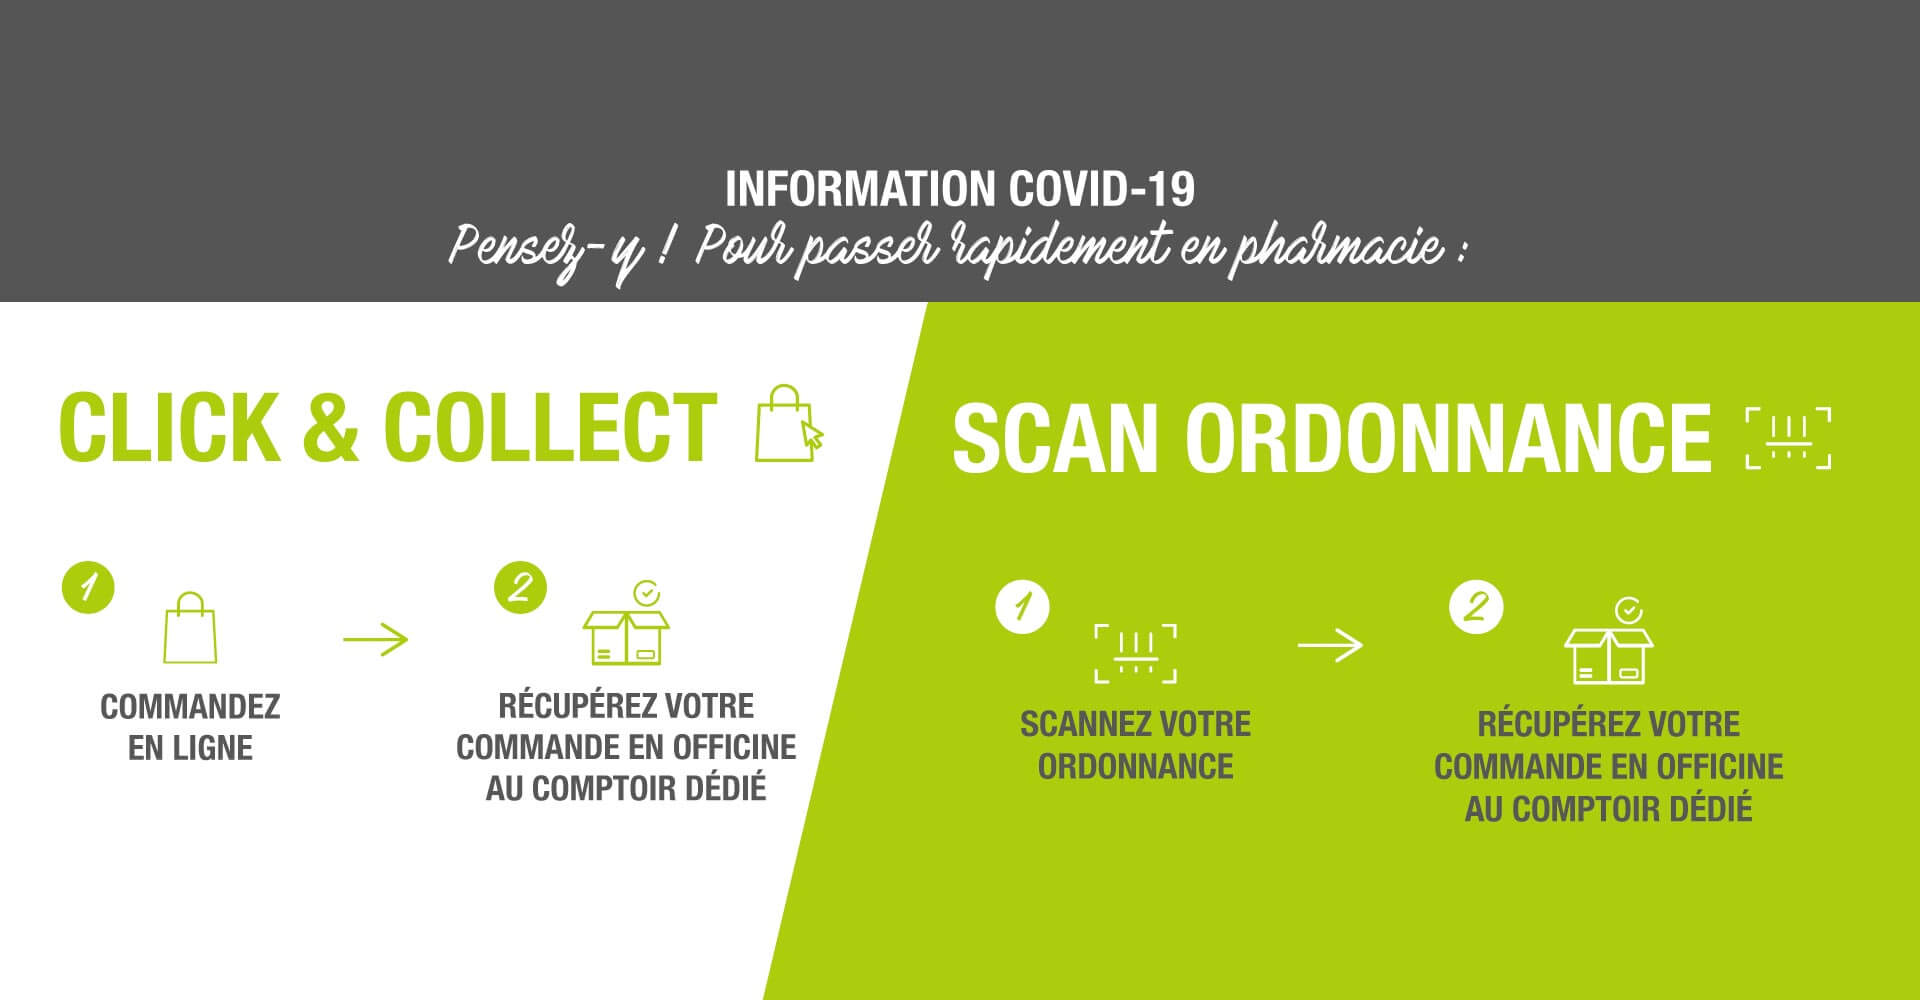 information covid19 : click and collect et scan ordonnance